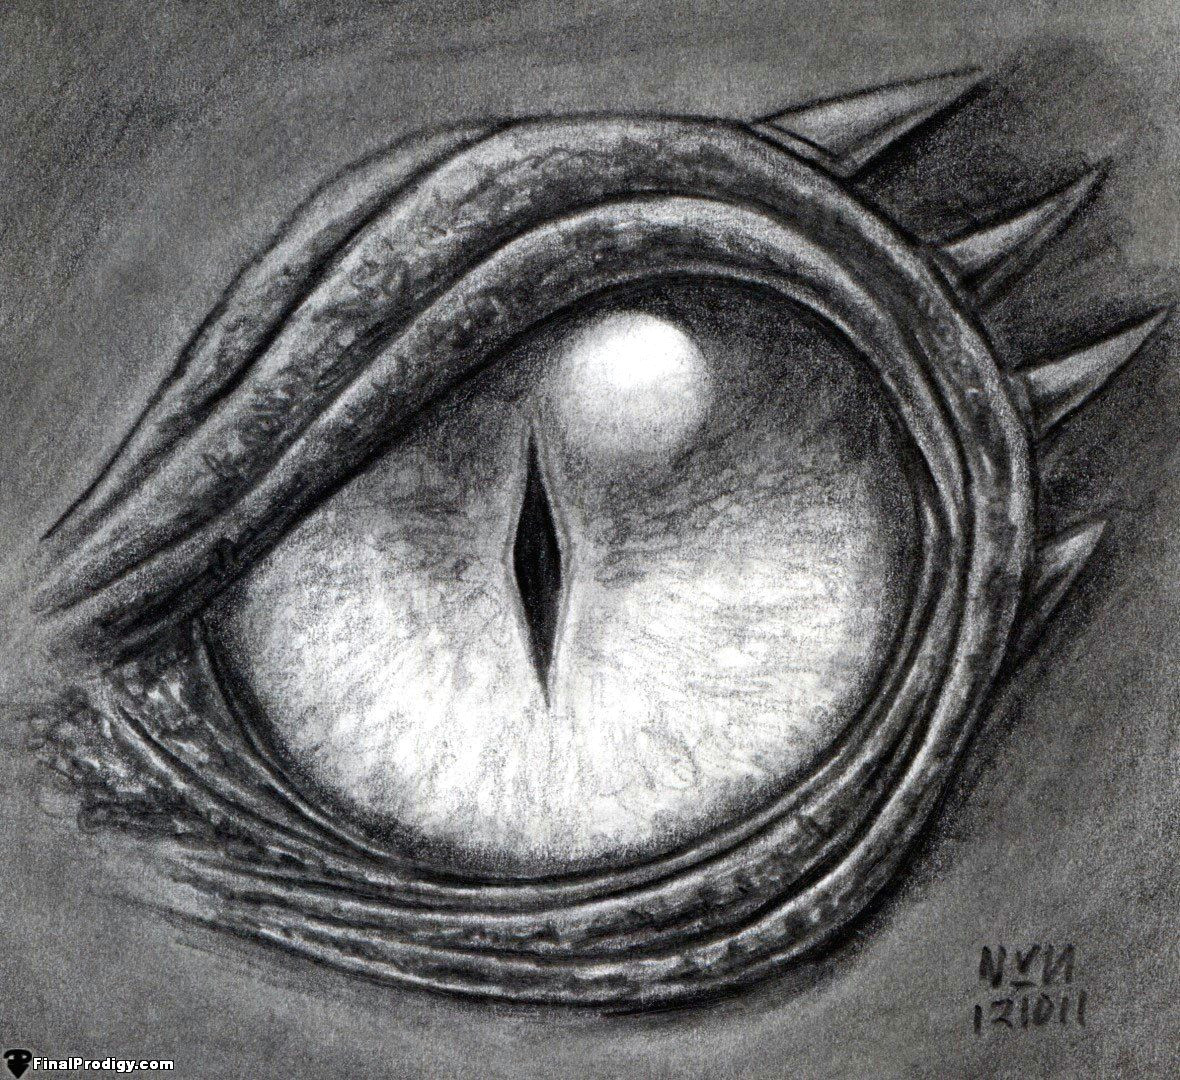 how to draw a dragon eye step by step step 8 define the dark lines using the f and 8b pencils blend in the eye shading using a blending stump